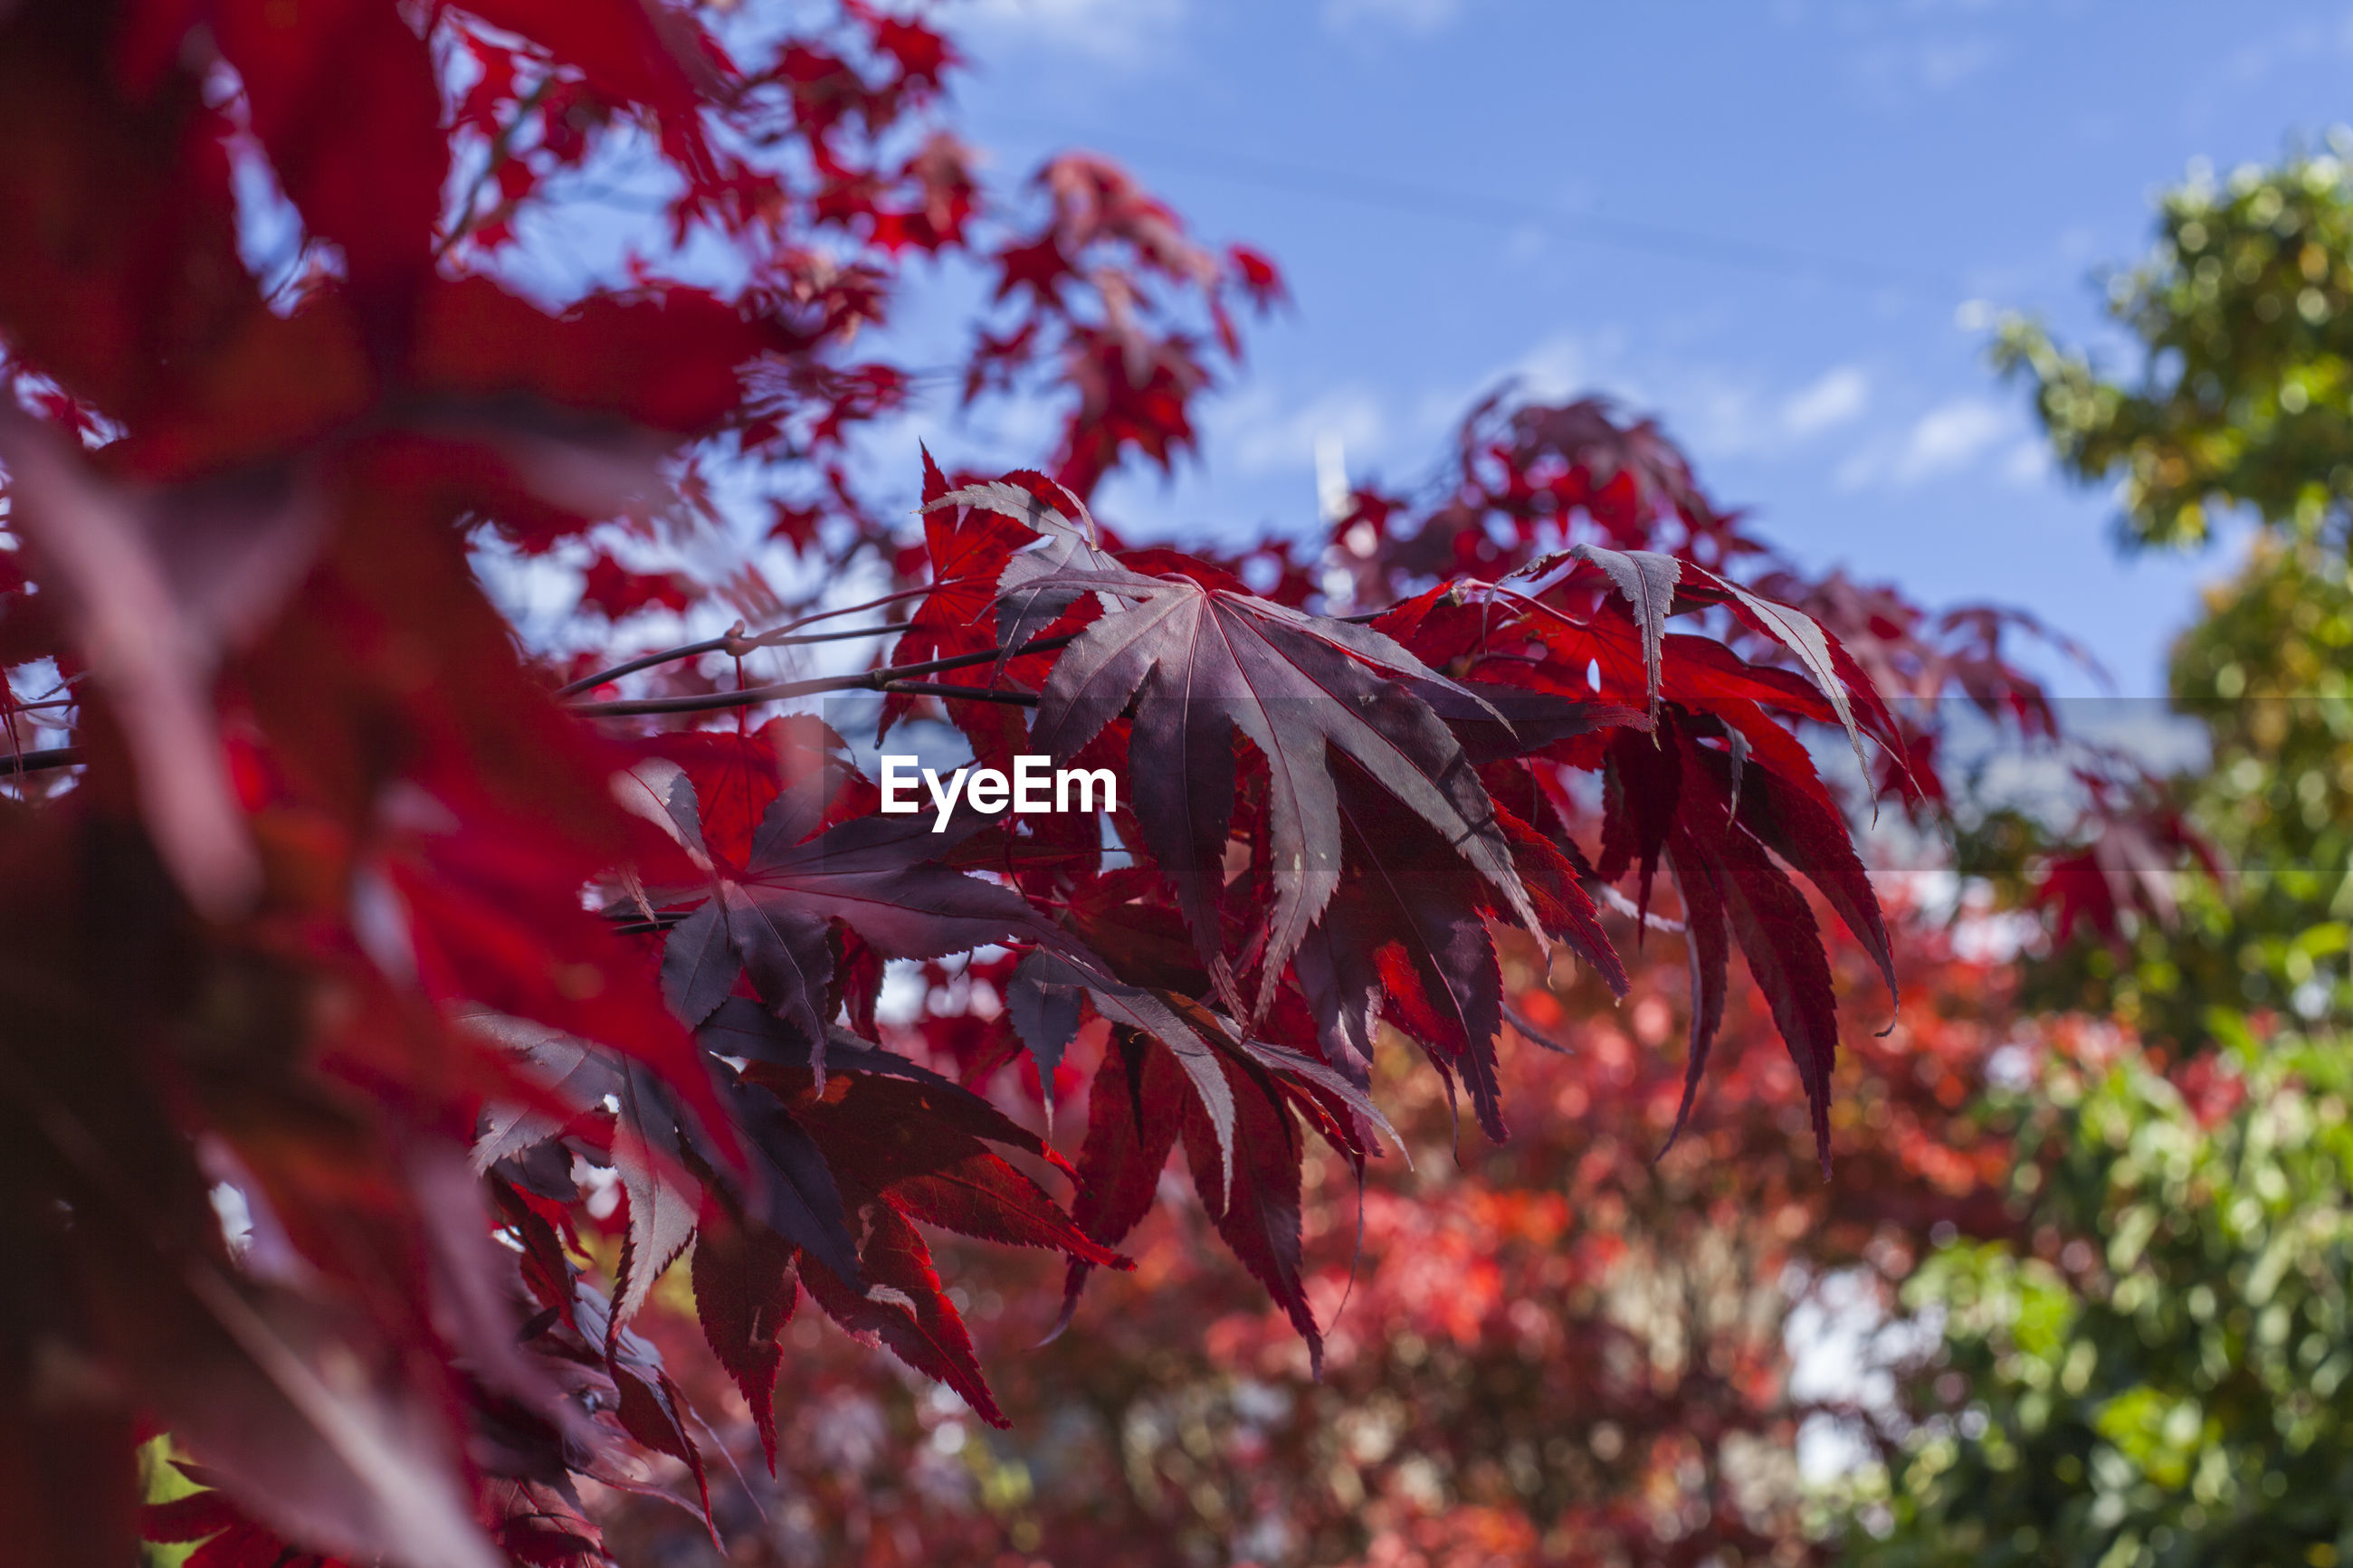 Close-up of red maple leaves on tree against sky